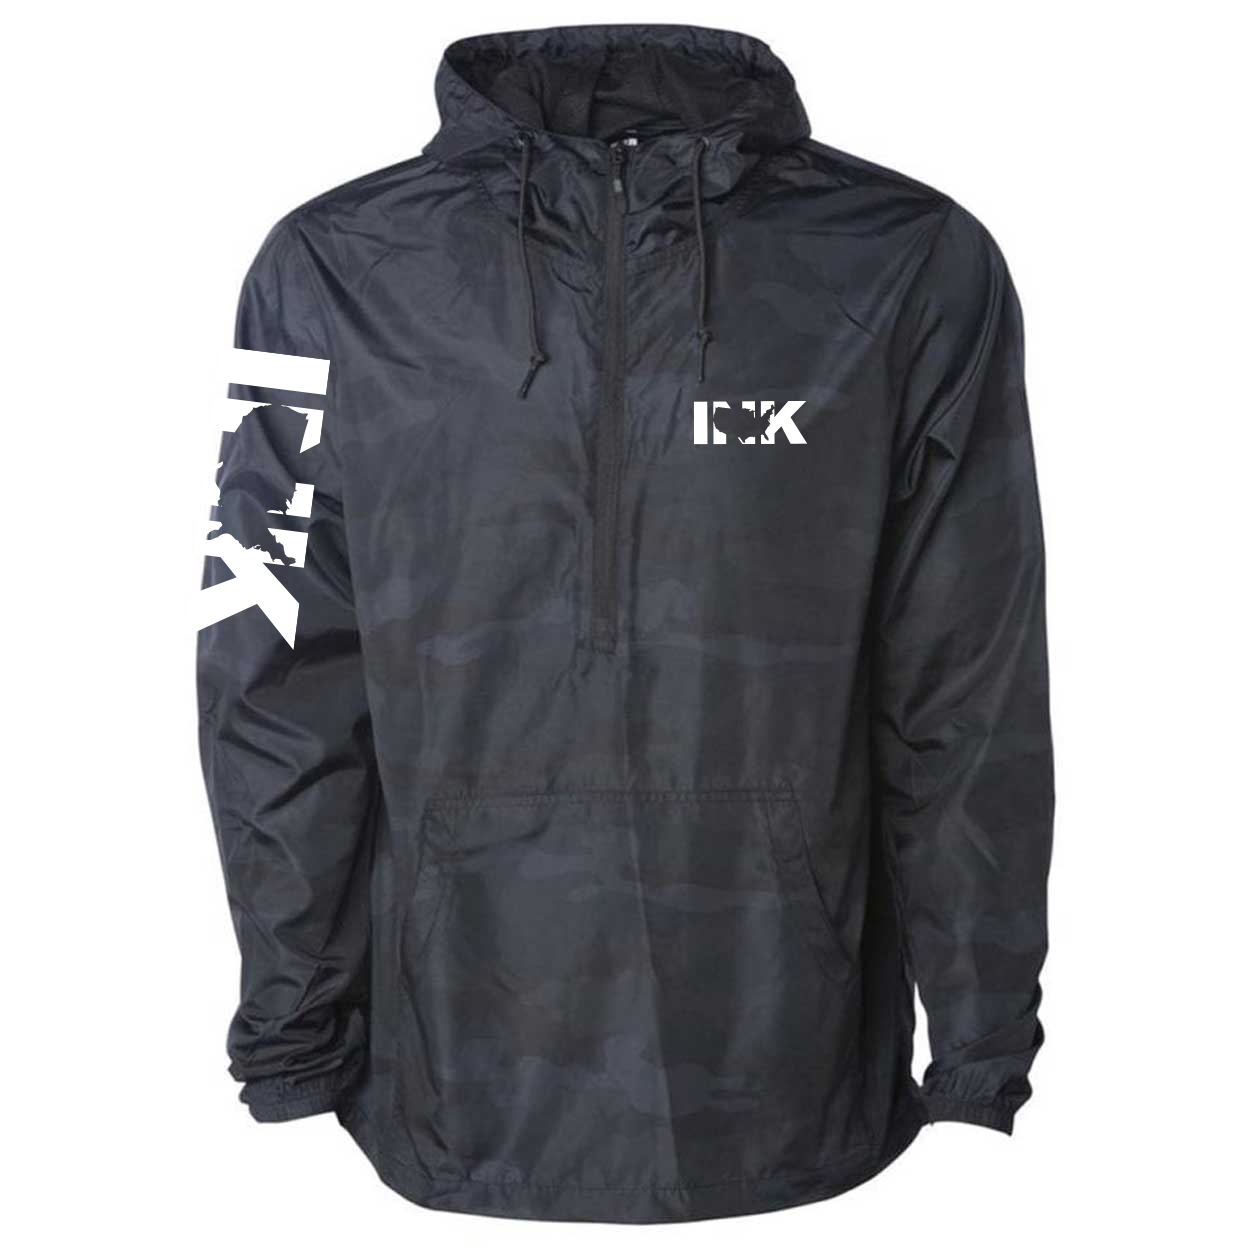 Ink United States Classic Lightweight Pullover Windbreaker Black Camo (White Logo)